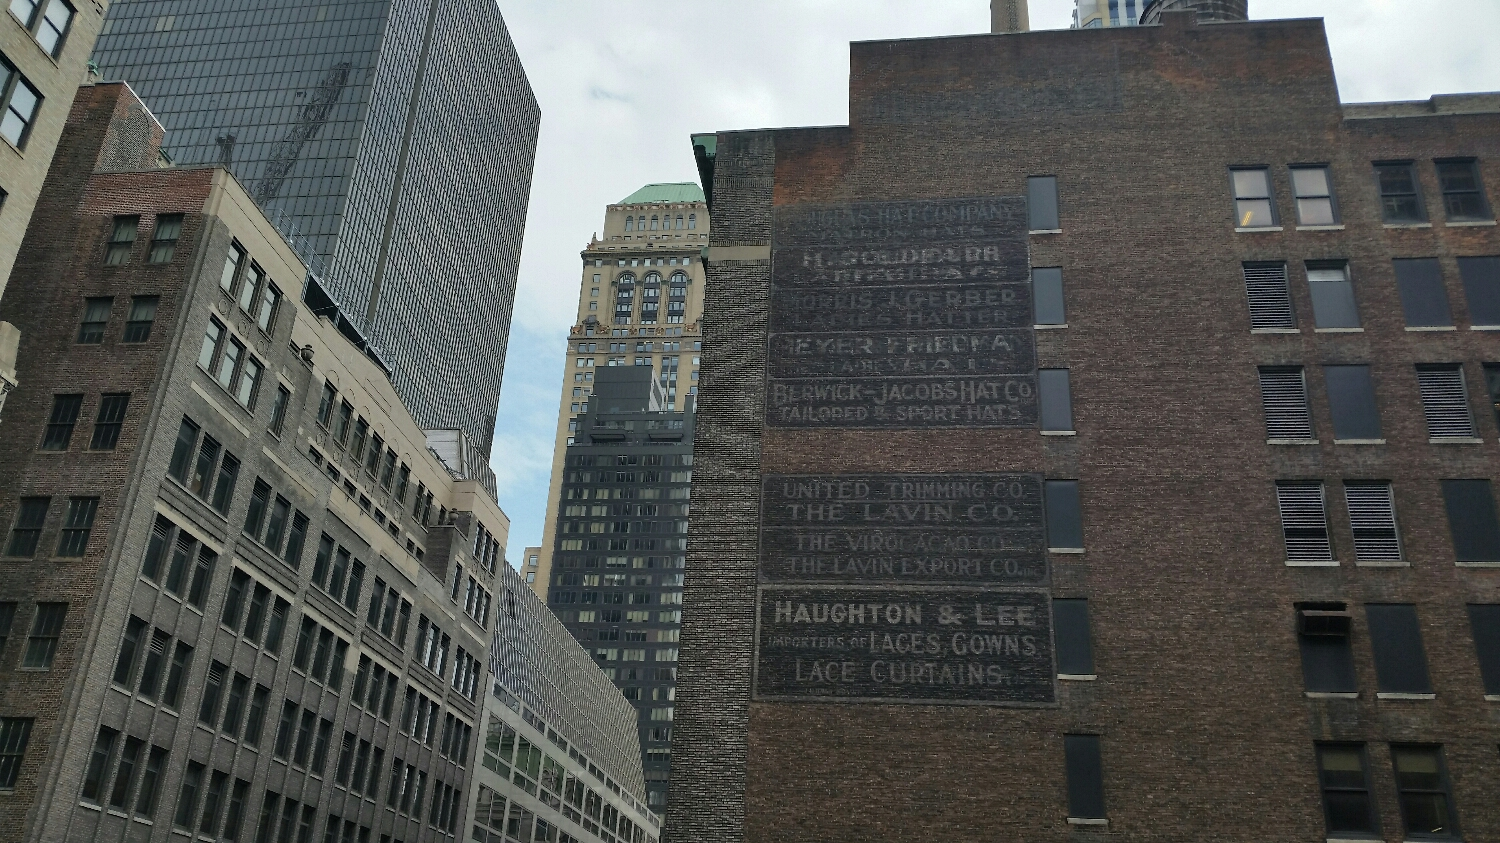 A view from our roof top , a list of defunct  businesses painted on the wall . These old advertisements  now serve as a memorial  to the old Millinery  District  .